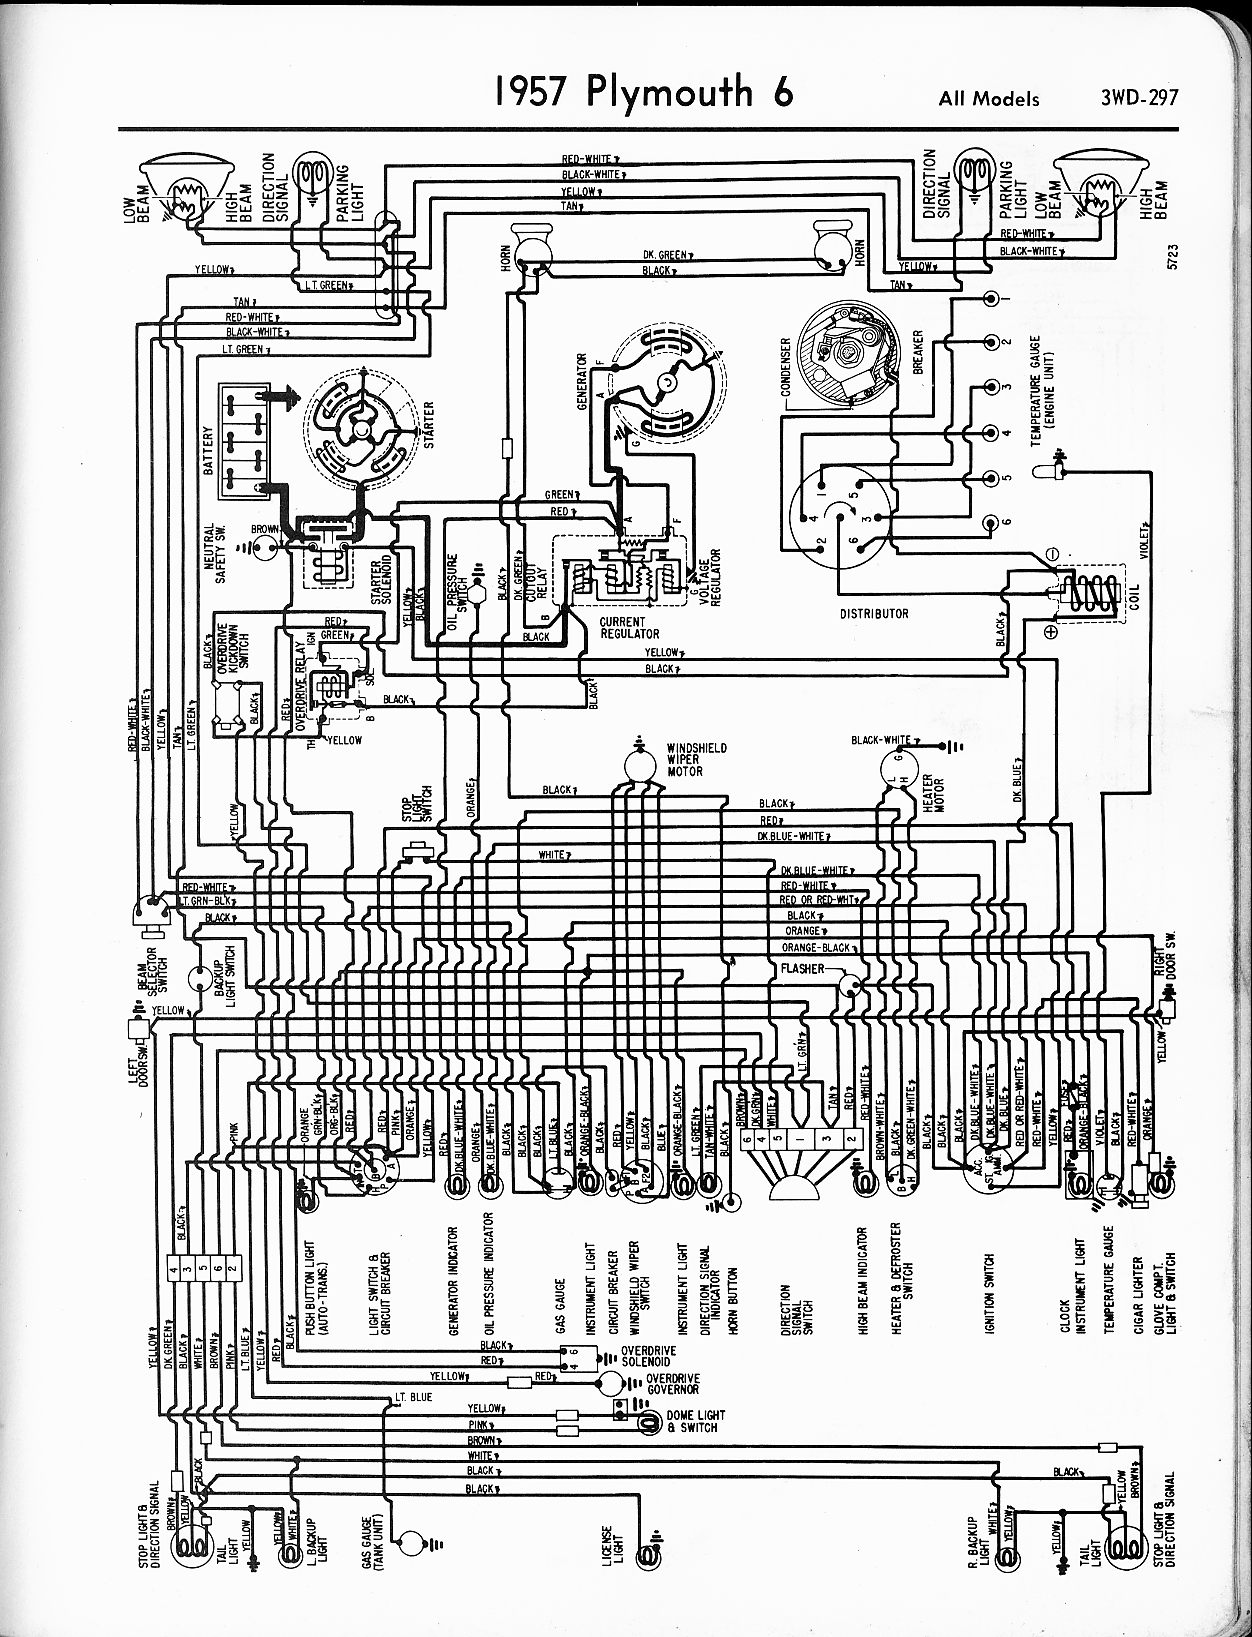 [WRG9367] 79 Plymouth Volare Wiring Diagram